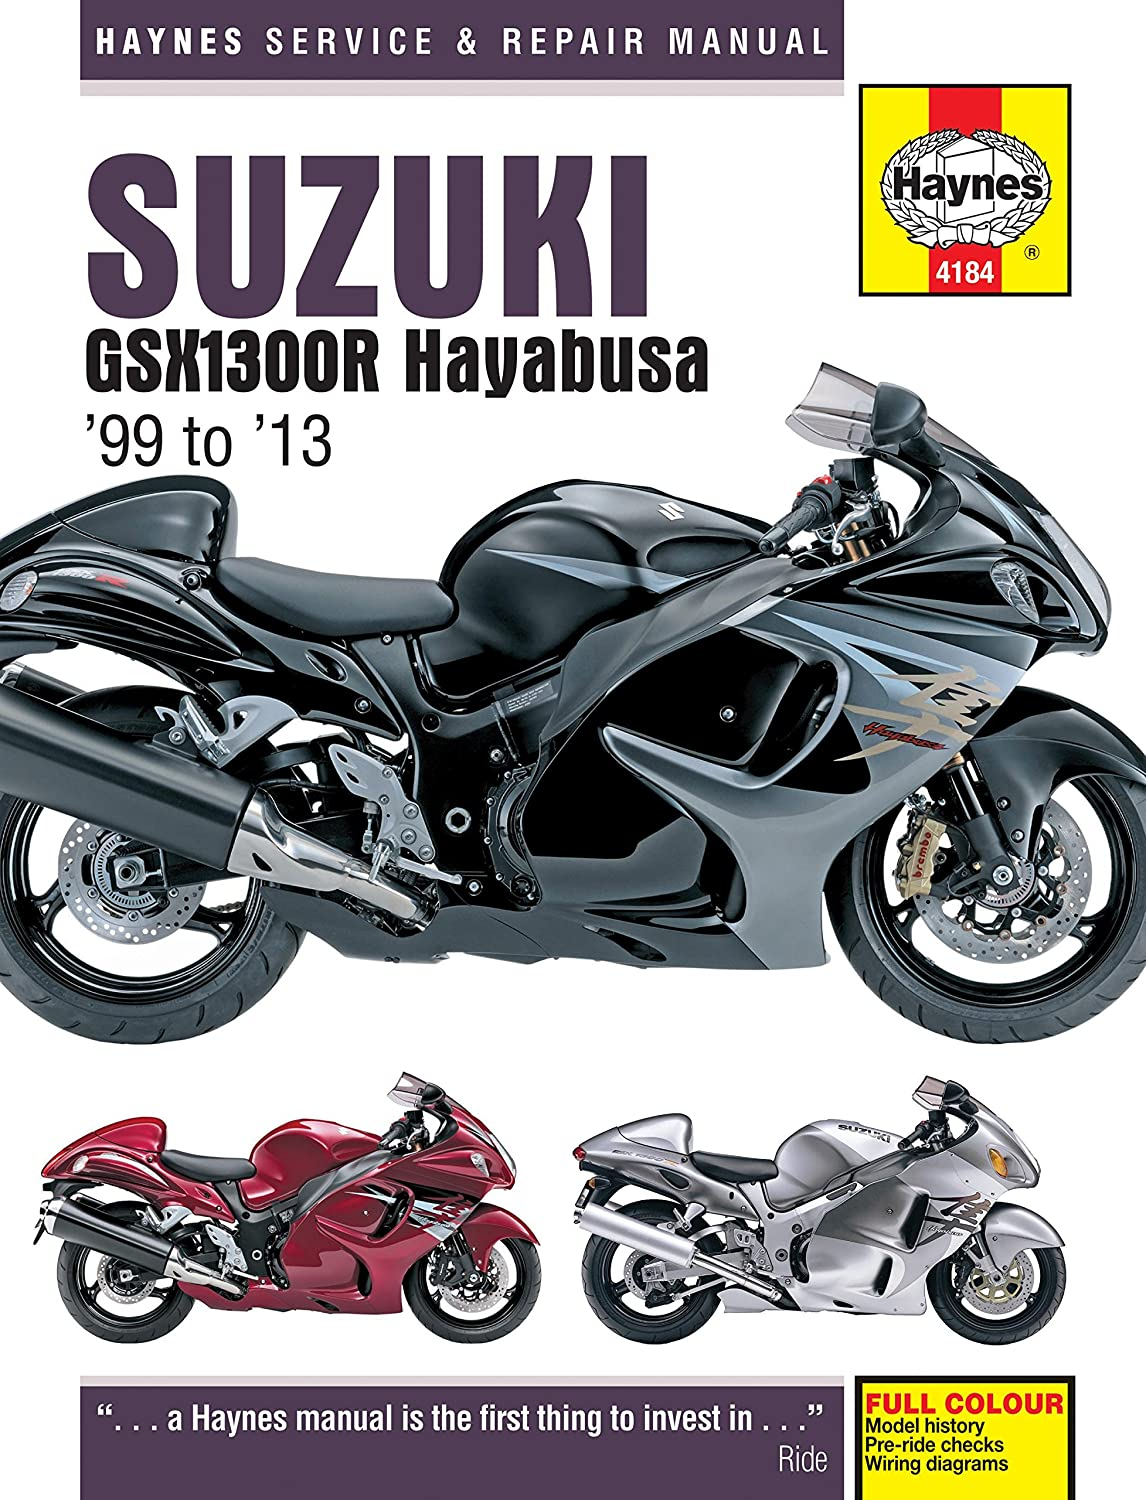 Suzuki GSX 1300 Repair Manual Haynes Service Manual Workshop Manual 1999-2004 Haynes Publishing